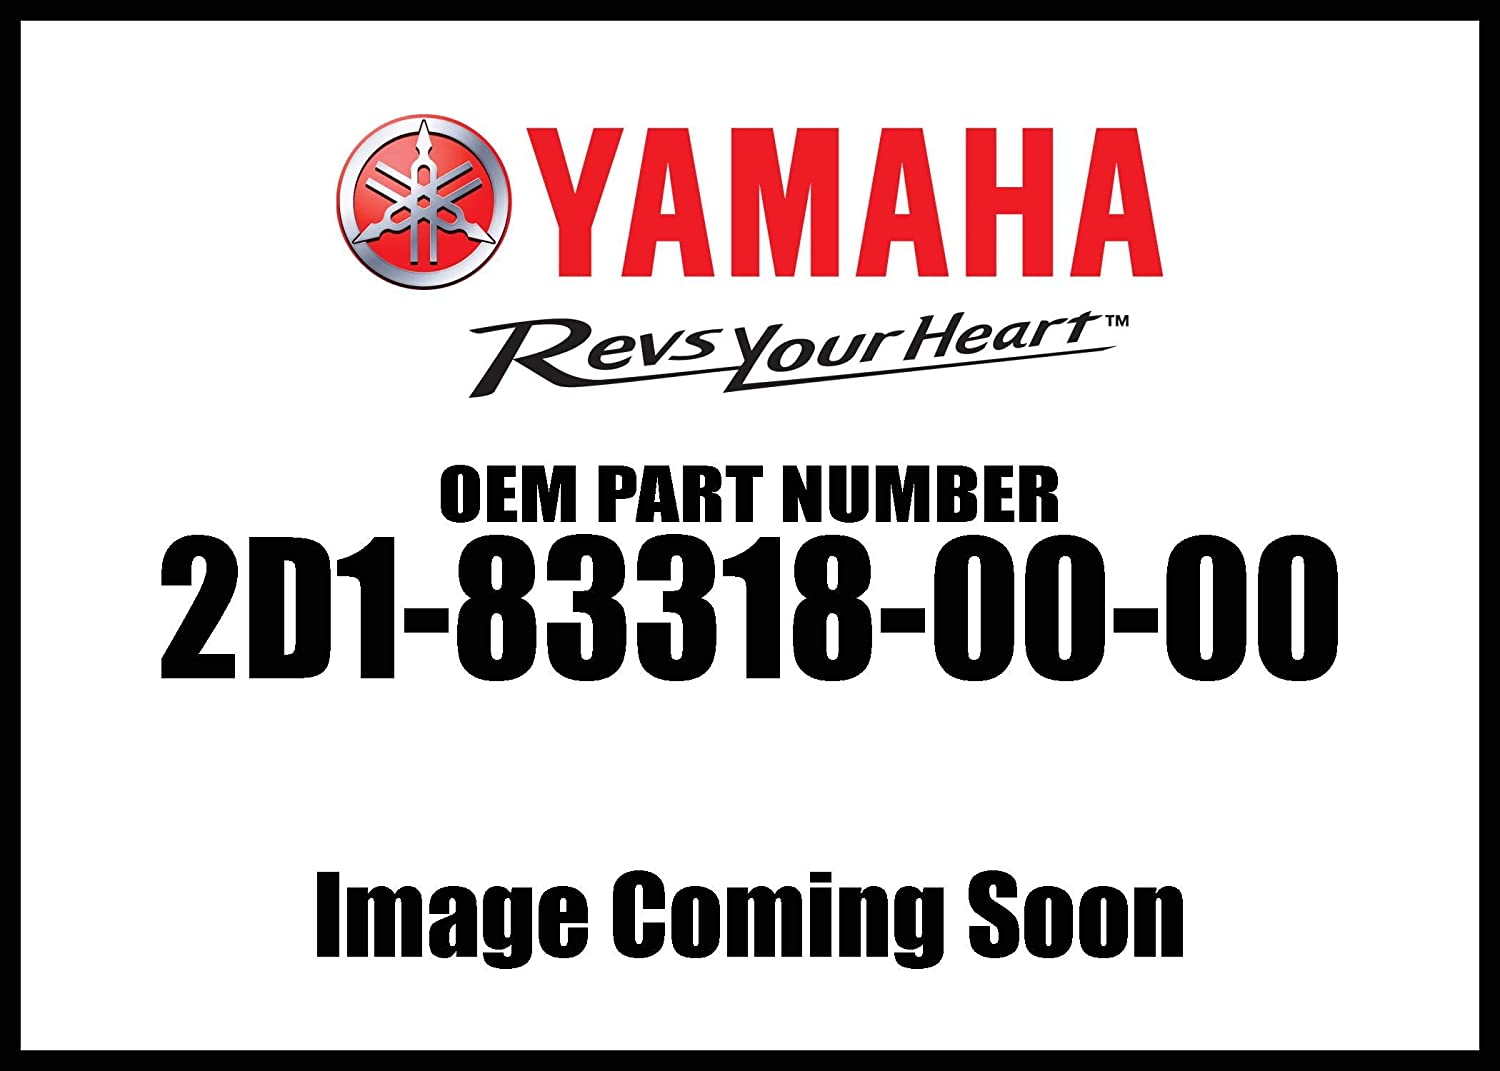 FLASHER 1; 2D1833180000 2C0-83318-00-00 Yamaha 2D1-83318-00-00 STAY 2D1-83318-00-00